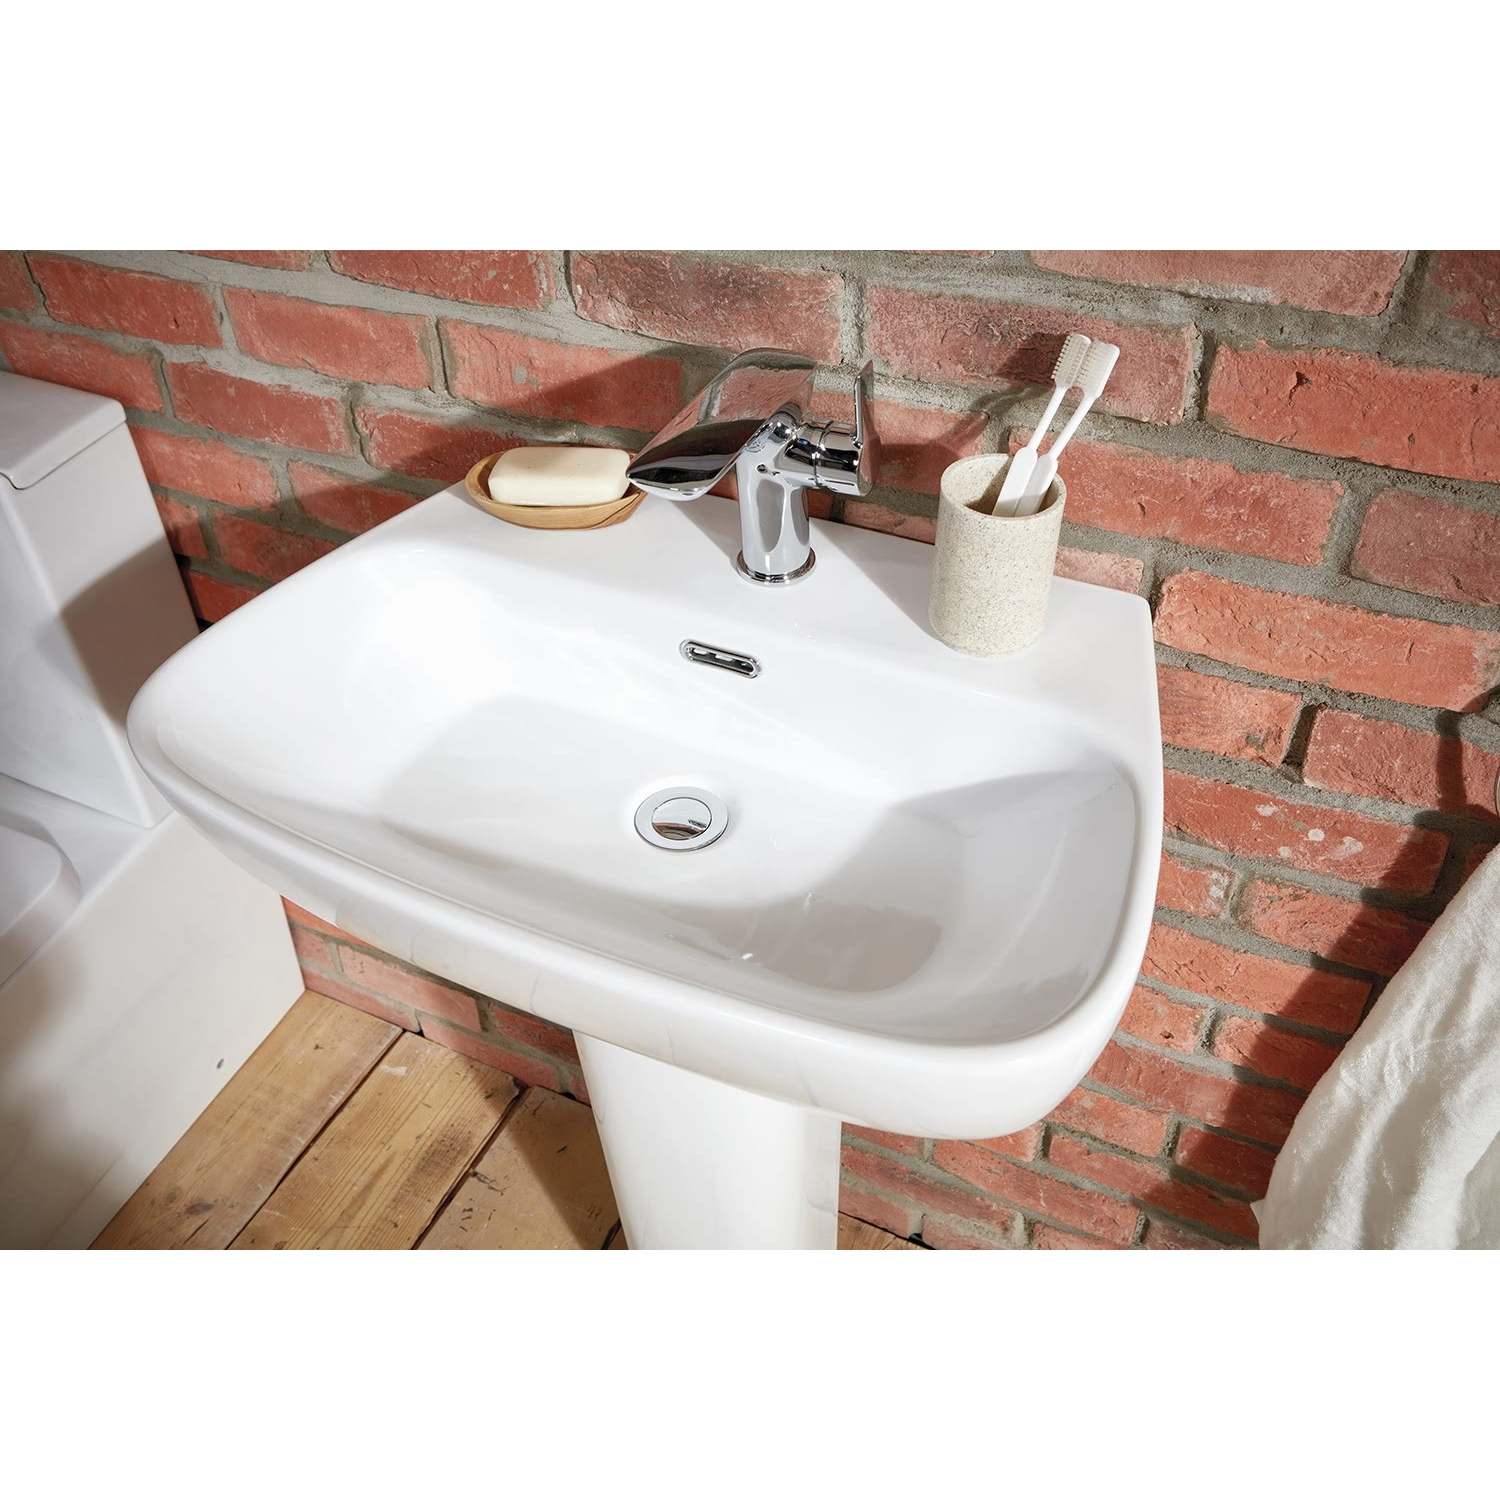 Verona Bellisi Aquaceramica Basin with Full Pedestal 600mm Wide - 1 Tap Hole